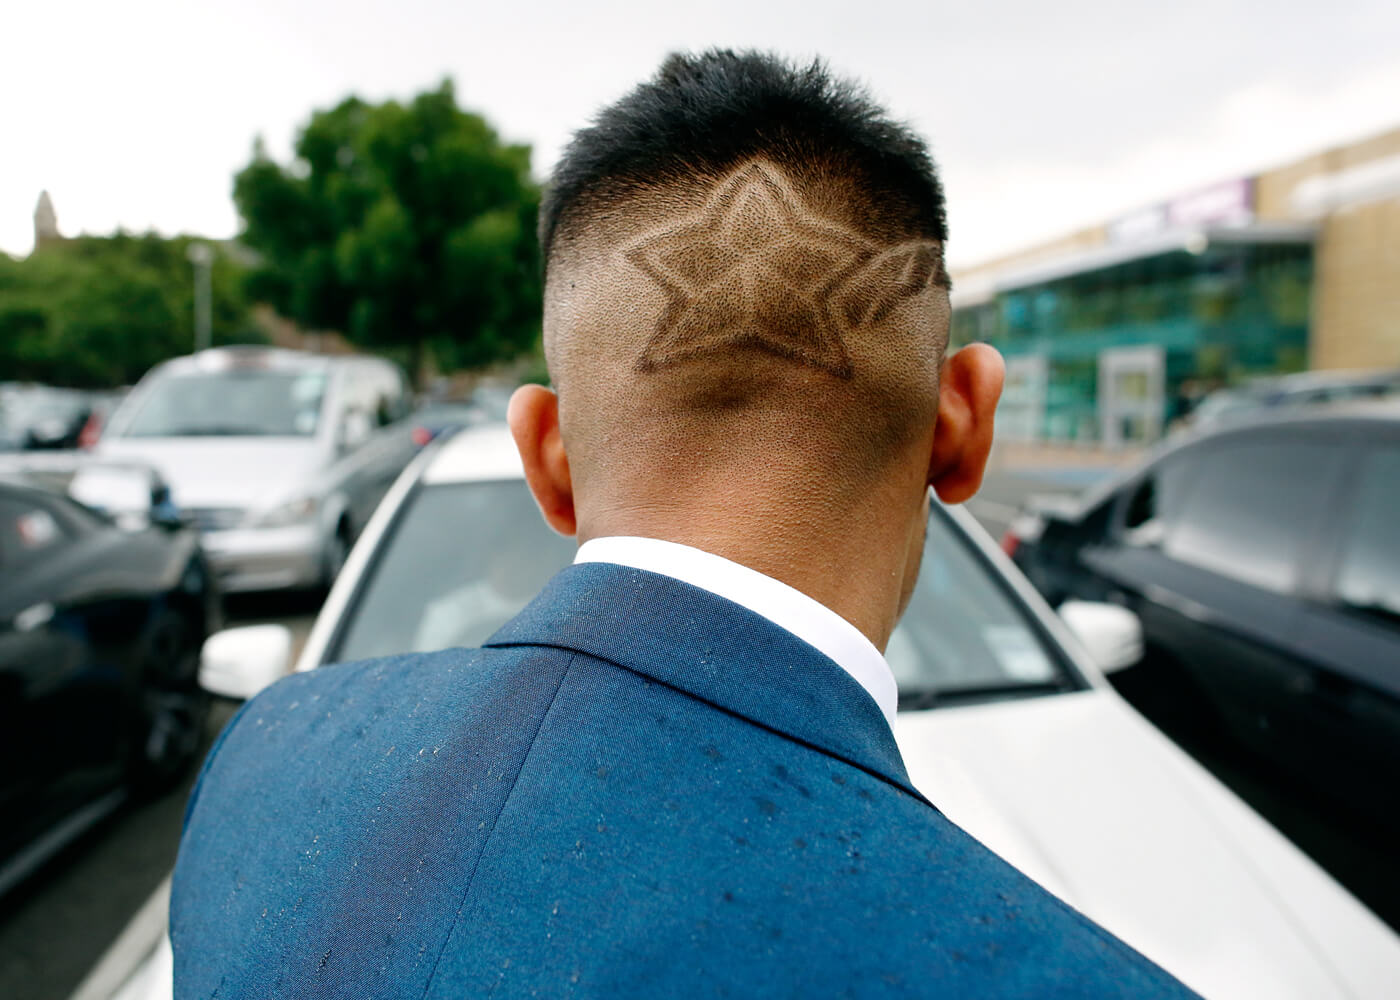 A special haircut for the day.